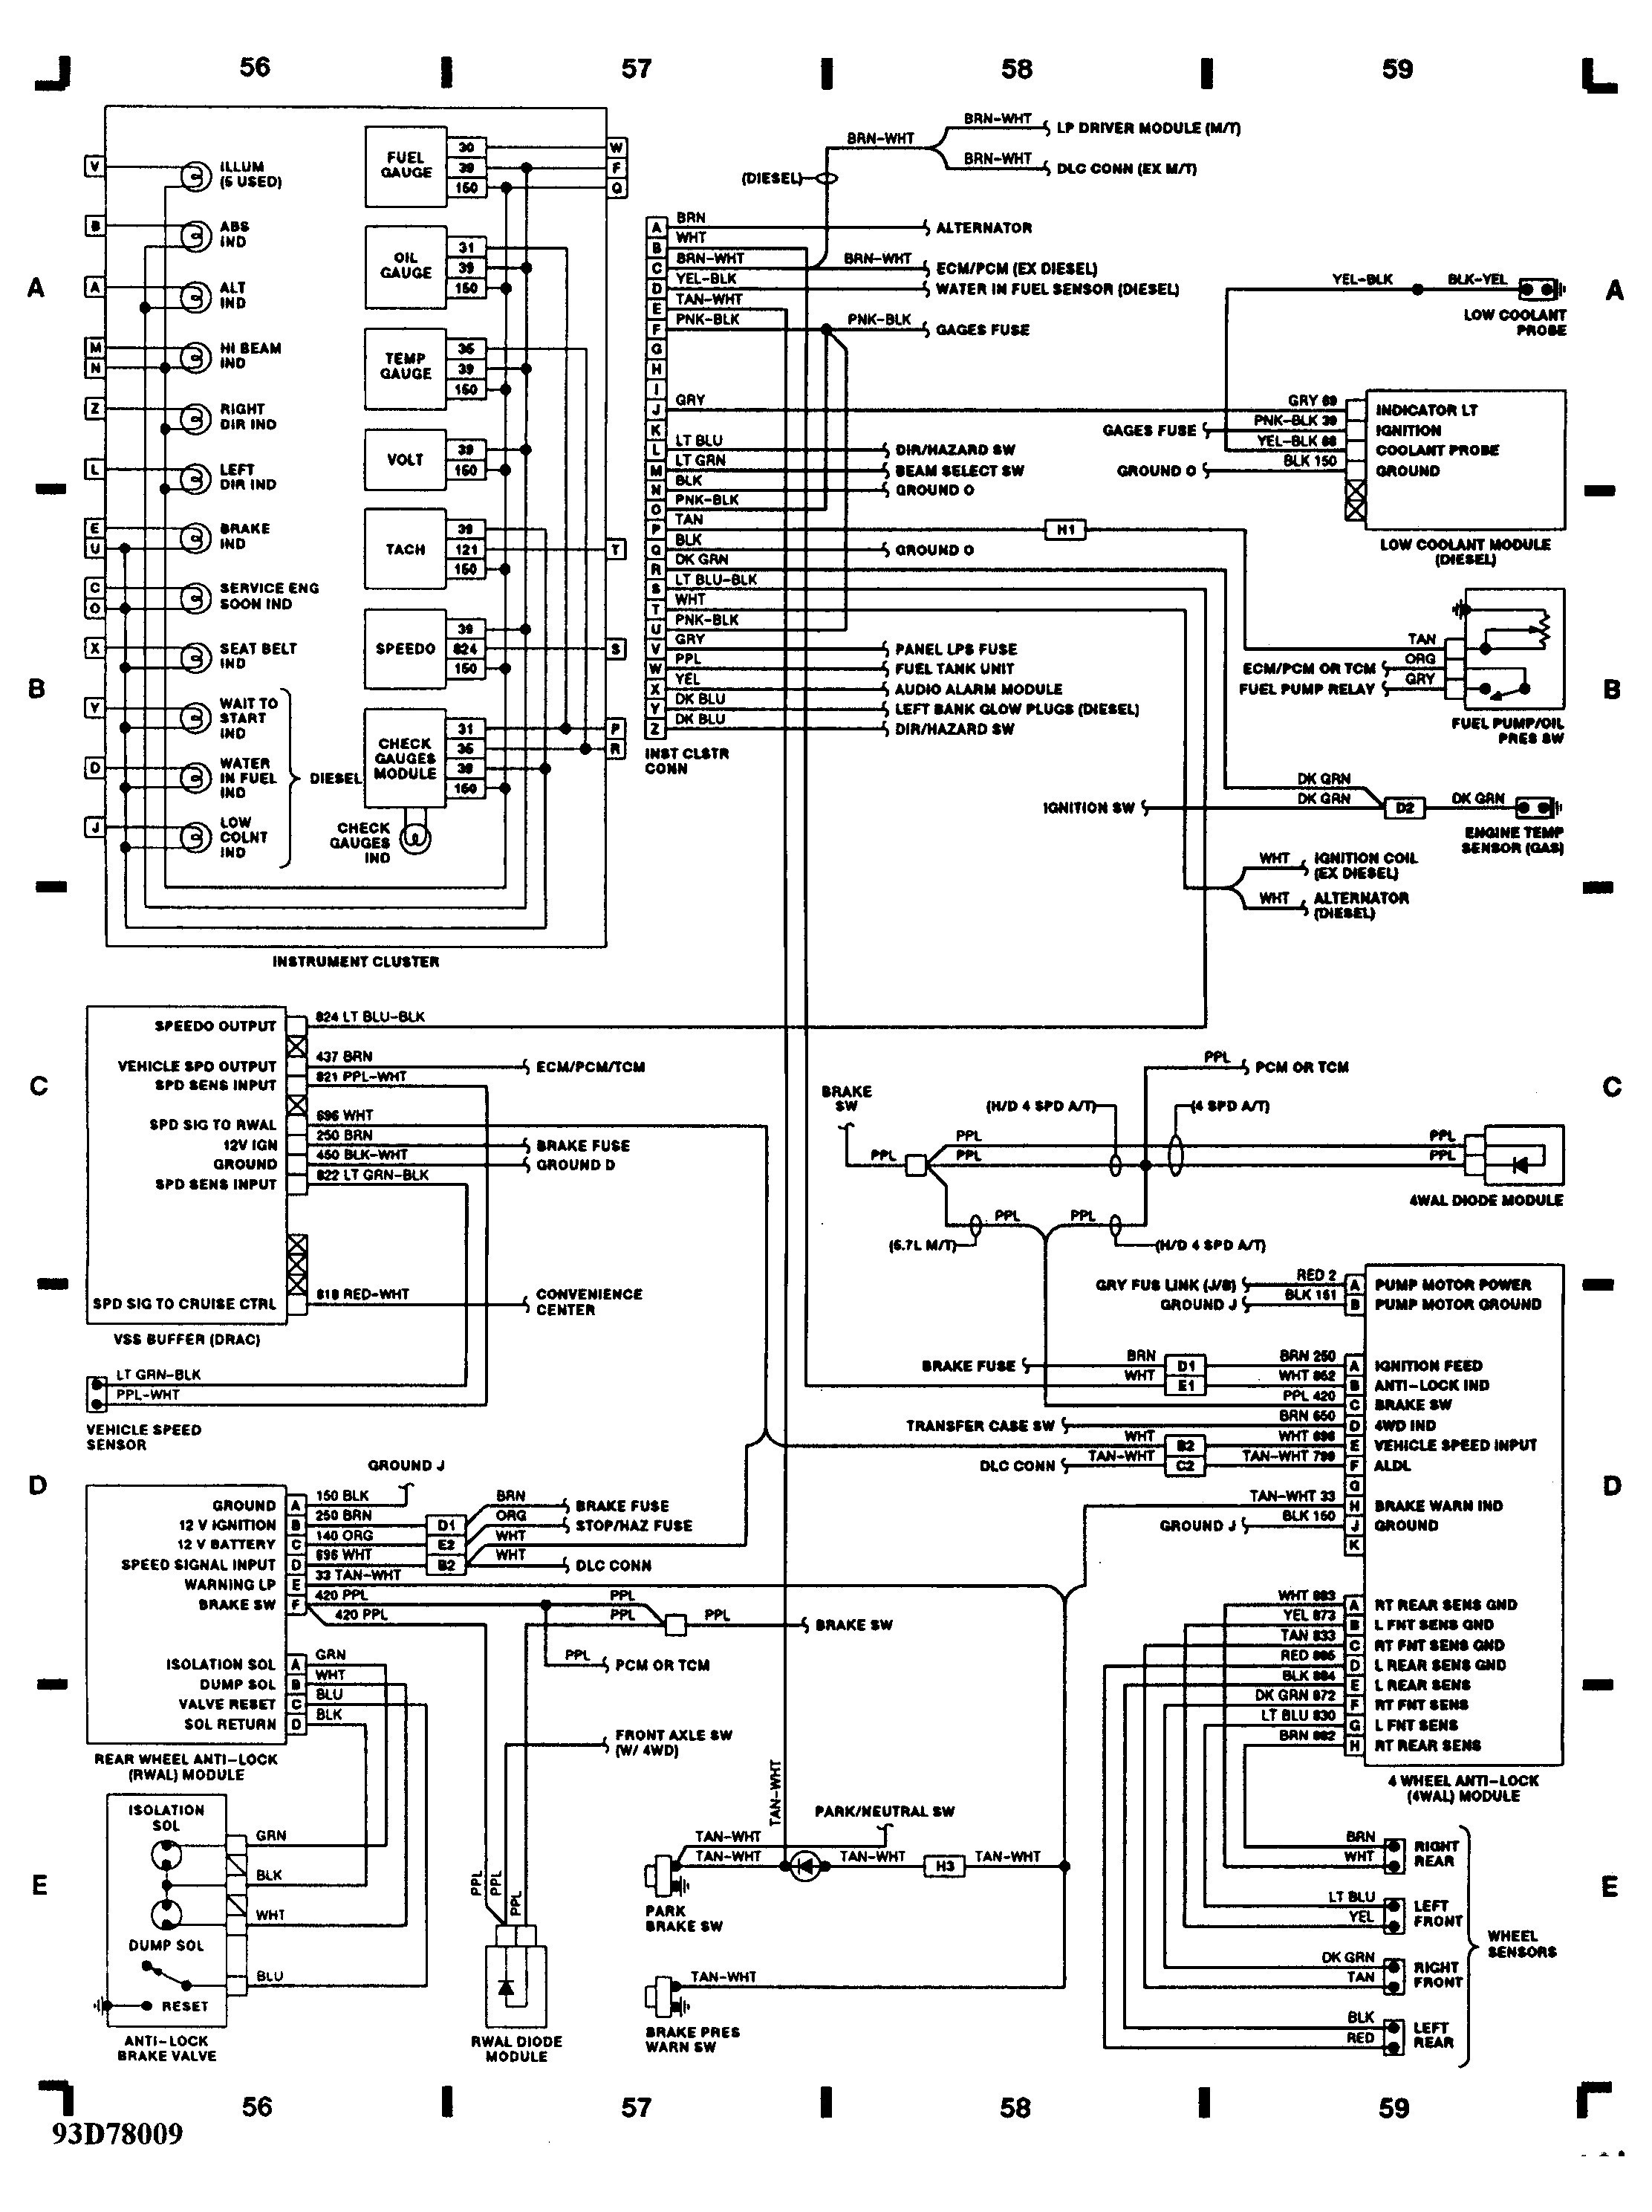 5 3 Liter Vortec Engine Diagram 3 1 Liter V6 Engine Diagram 5 7 Vortec Wiring Diagram 4 3l Vortec Of 5 3 Liter Vortec Engine Diagram